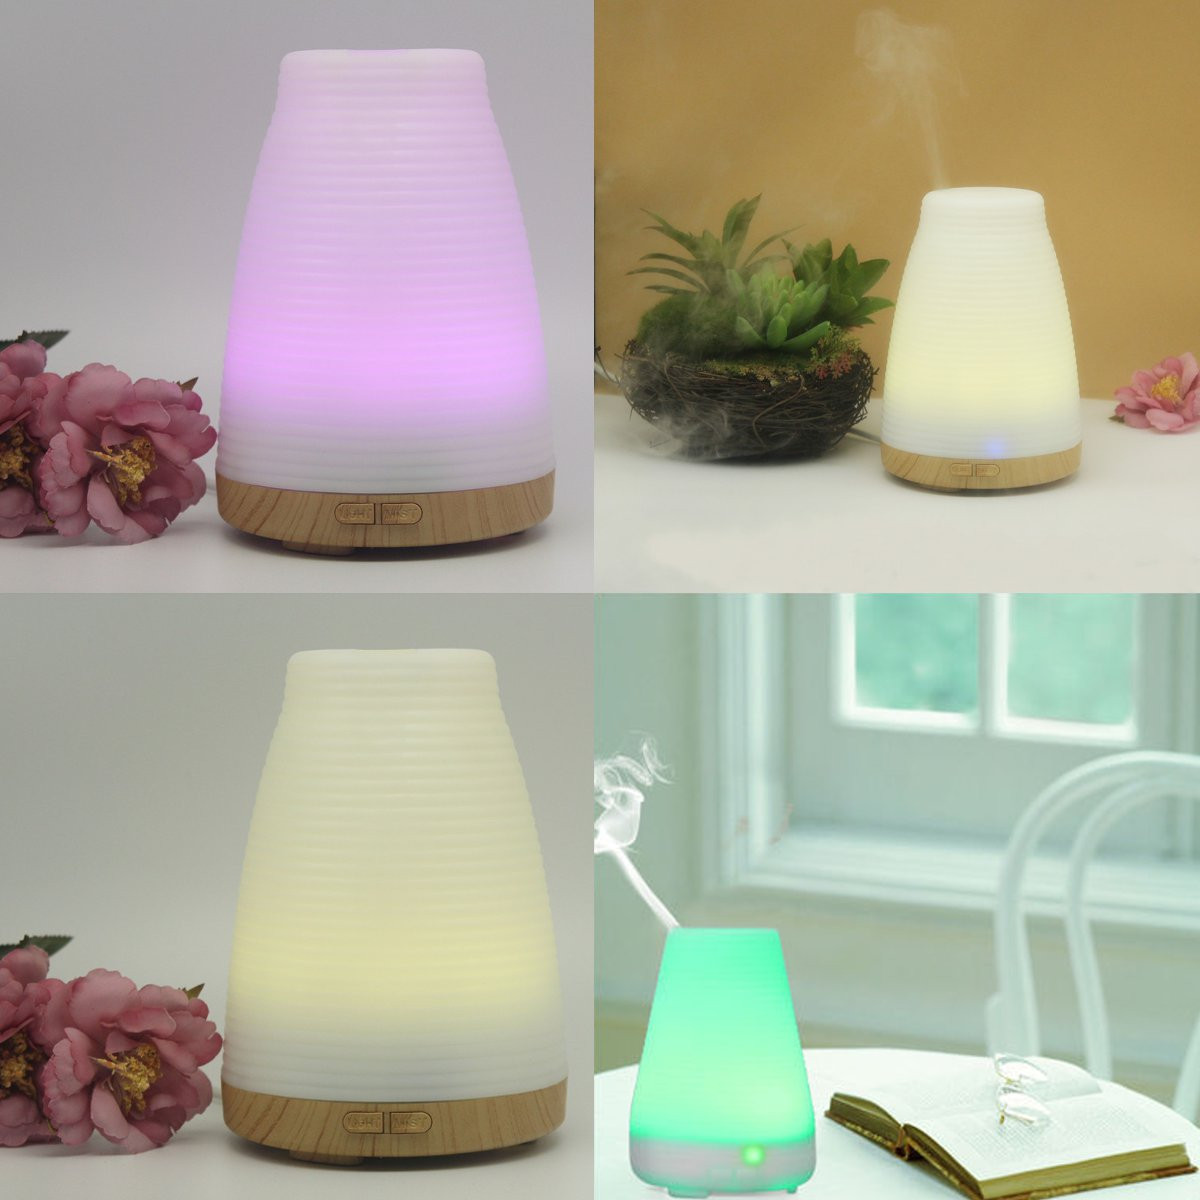 100ml Essential Oil Diffuser Ultrasonic LED Humidifier Air Aromatherapy Purifier